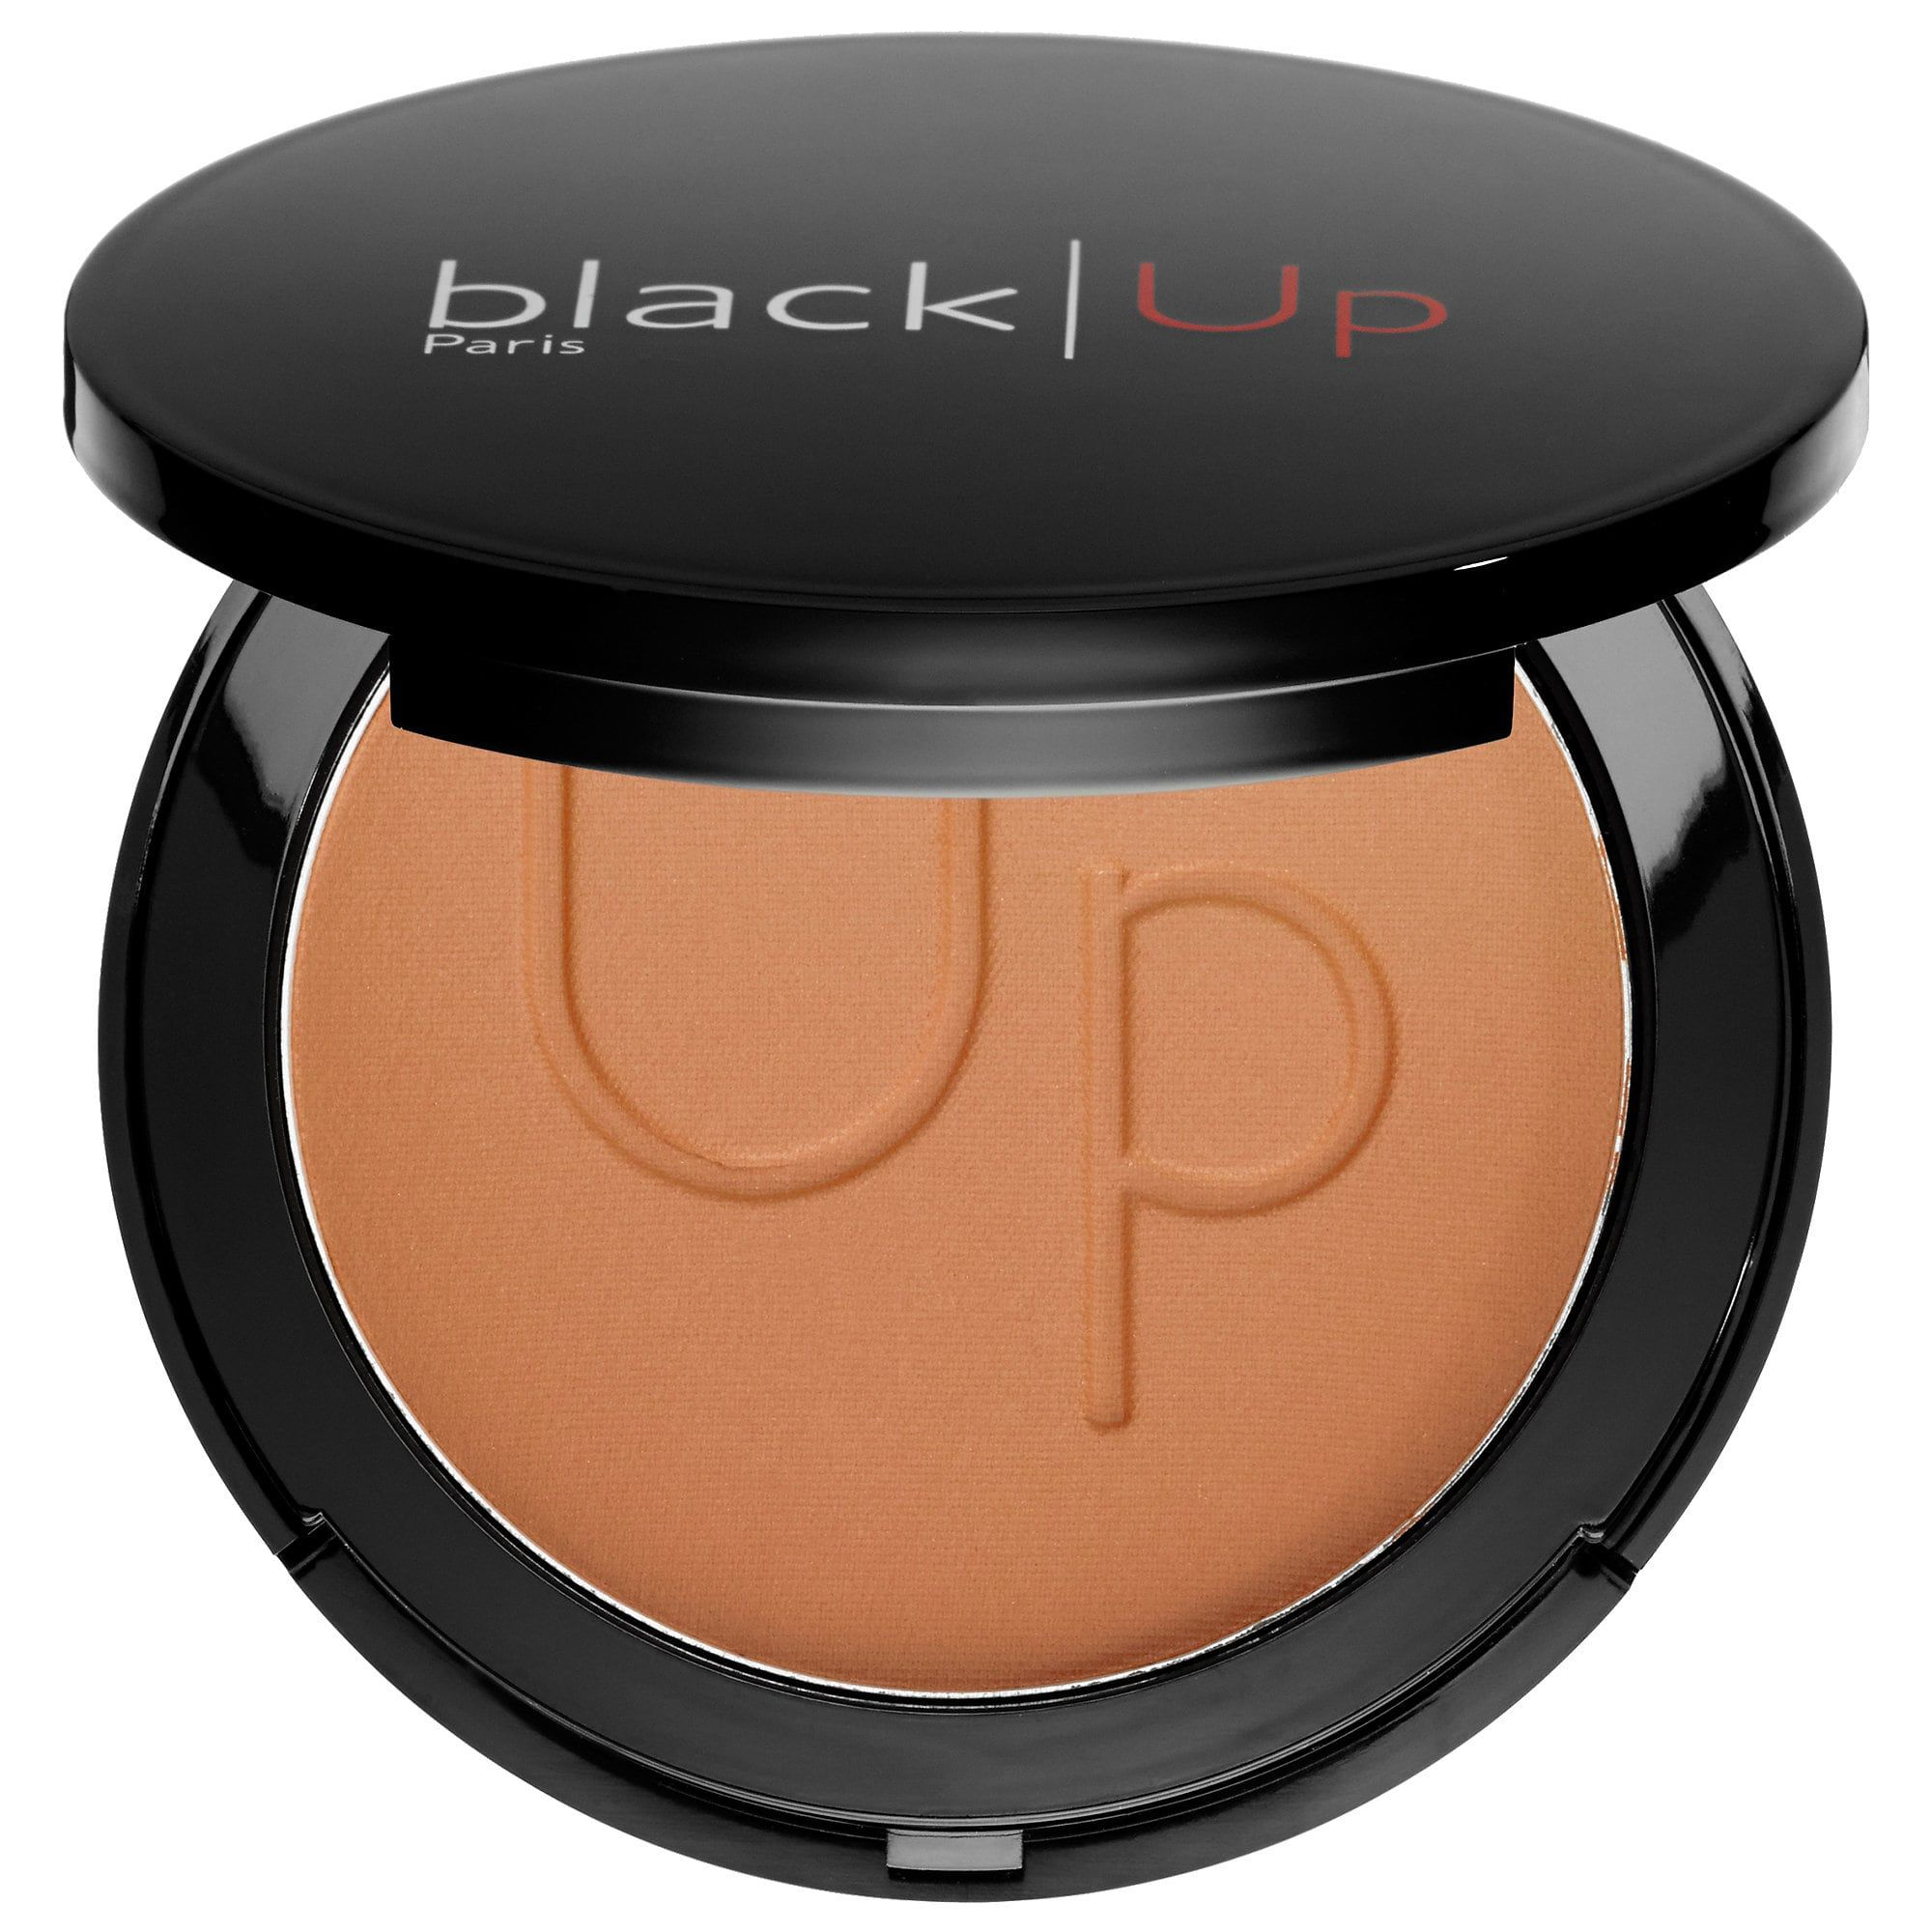 Black Up Two Way Cake TW (With images) Sephora beauty